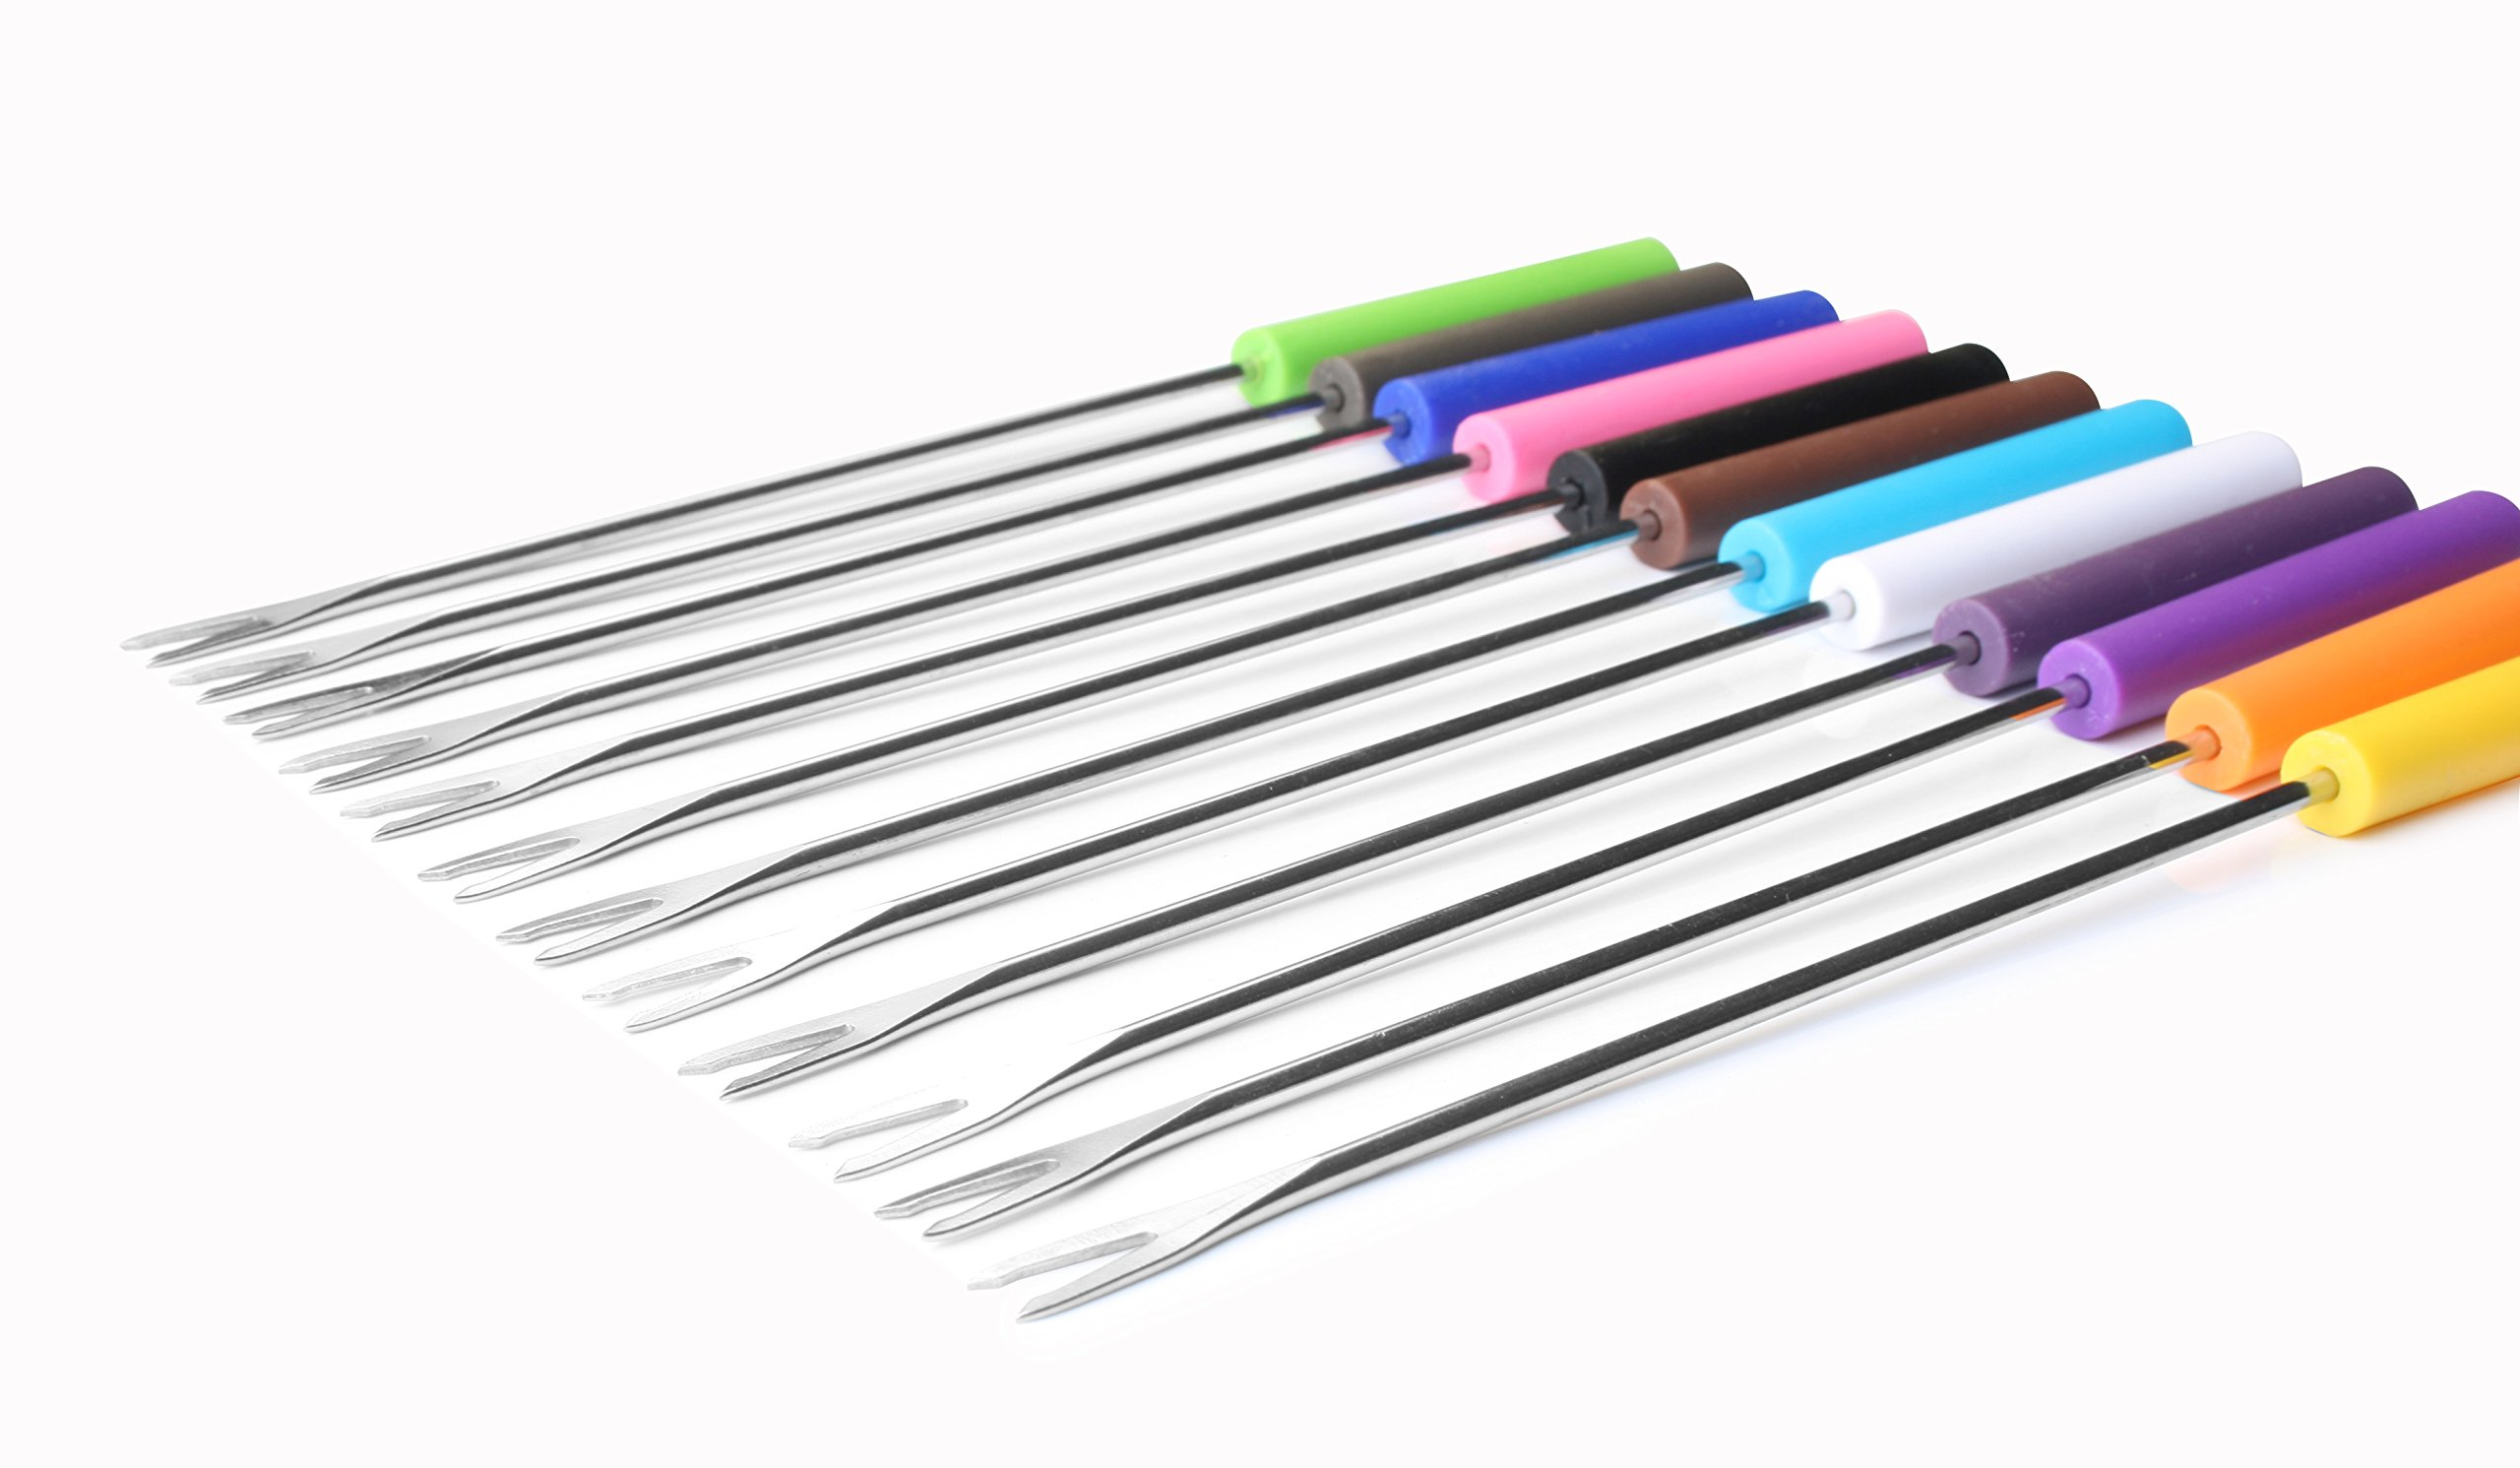 Artestia Stainless Steel Fondue Forks with Heat Proof Handle in Vivid Colors (Set of 12), 9.6 inch by Artestia (Image #3)